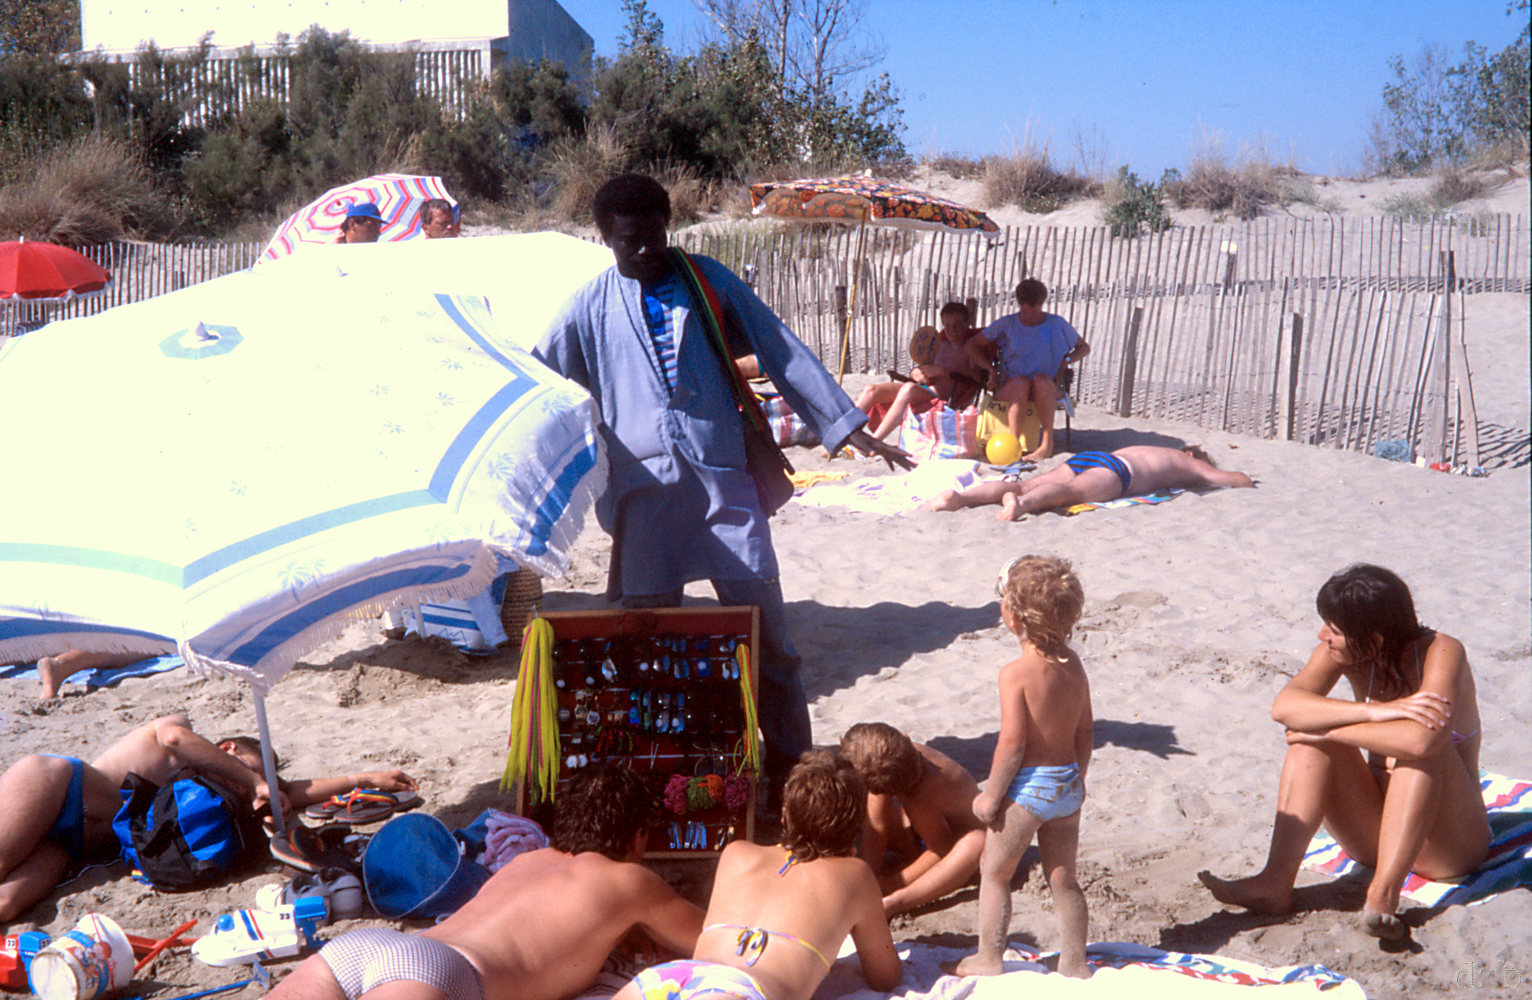 A flying merchant offers his goods to people on the beach.